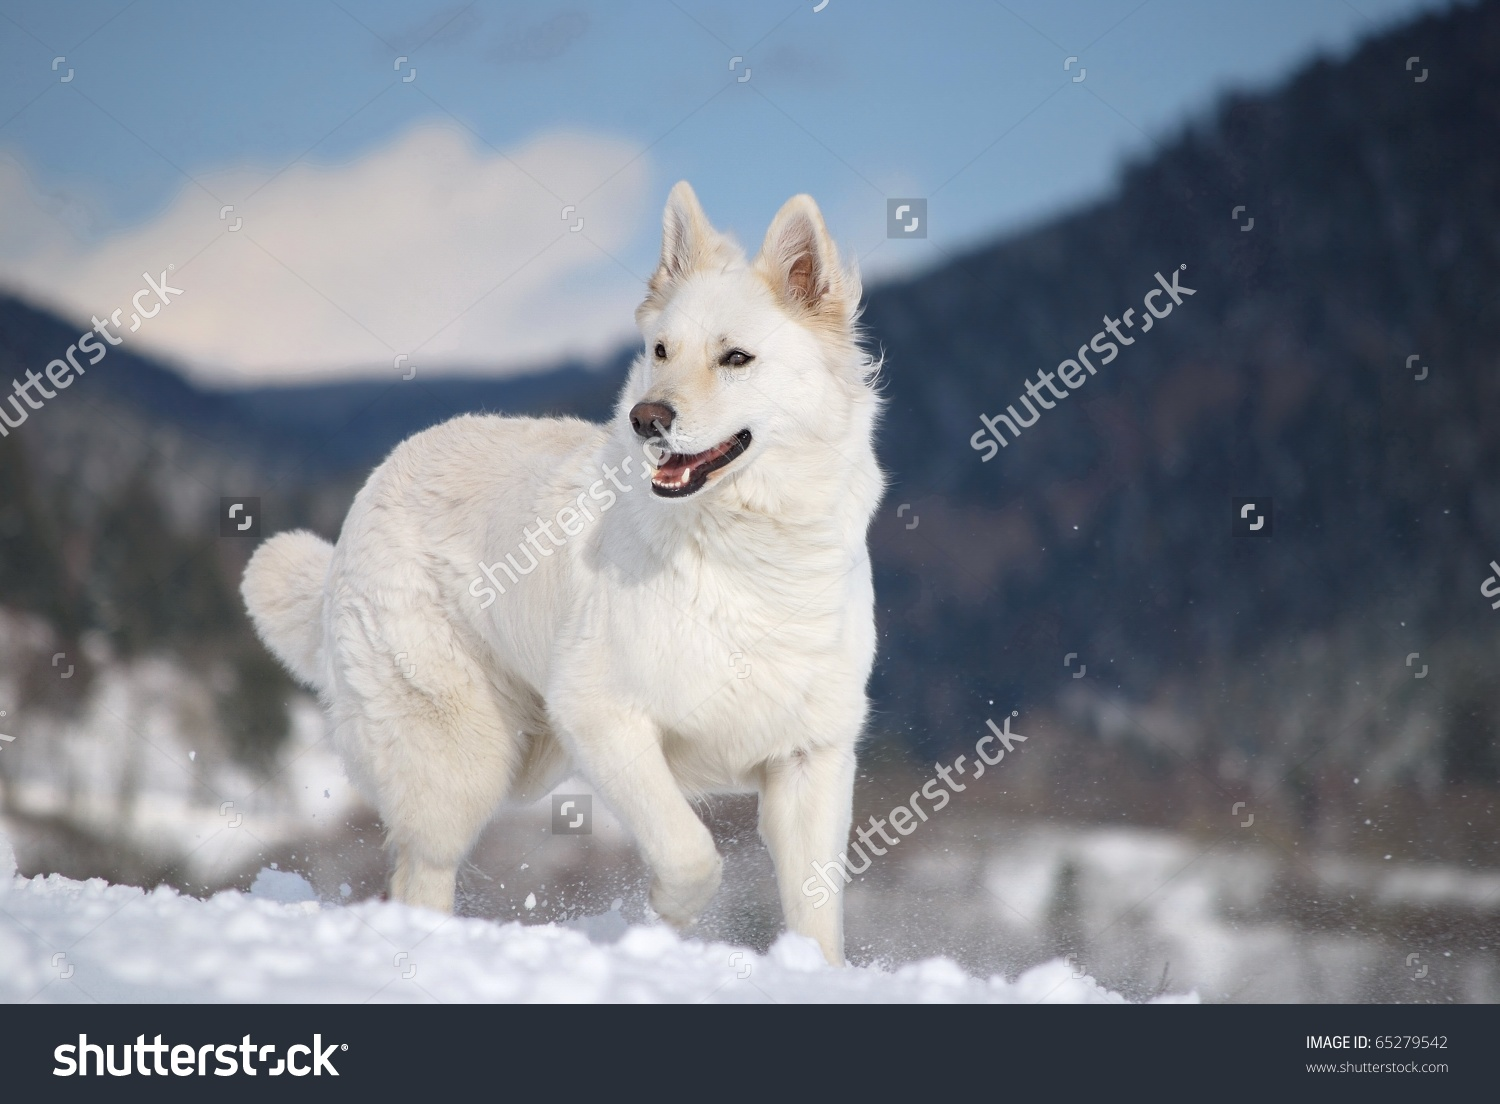 Berger Blanc Suisse clipart #4, Download drawings